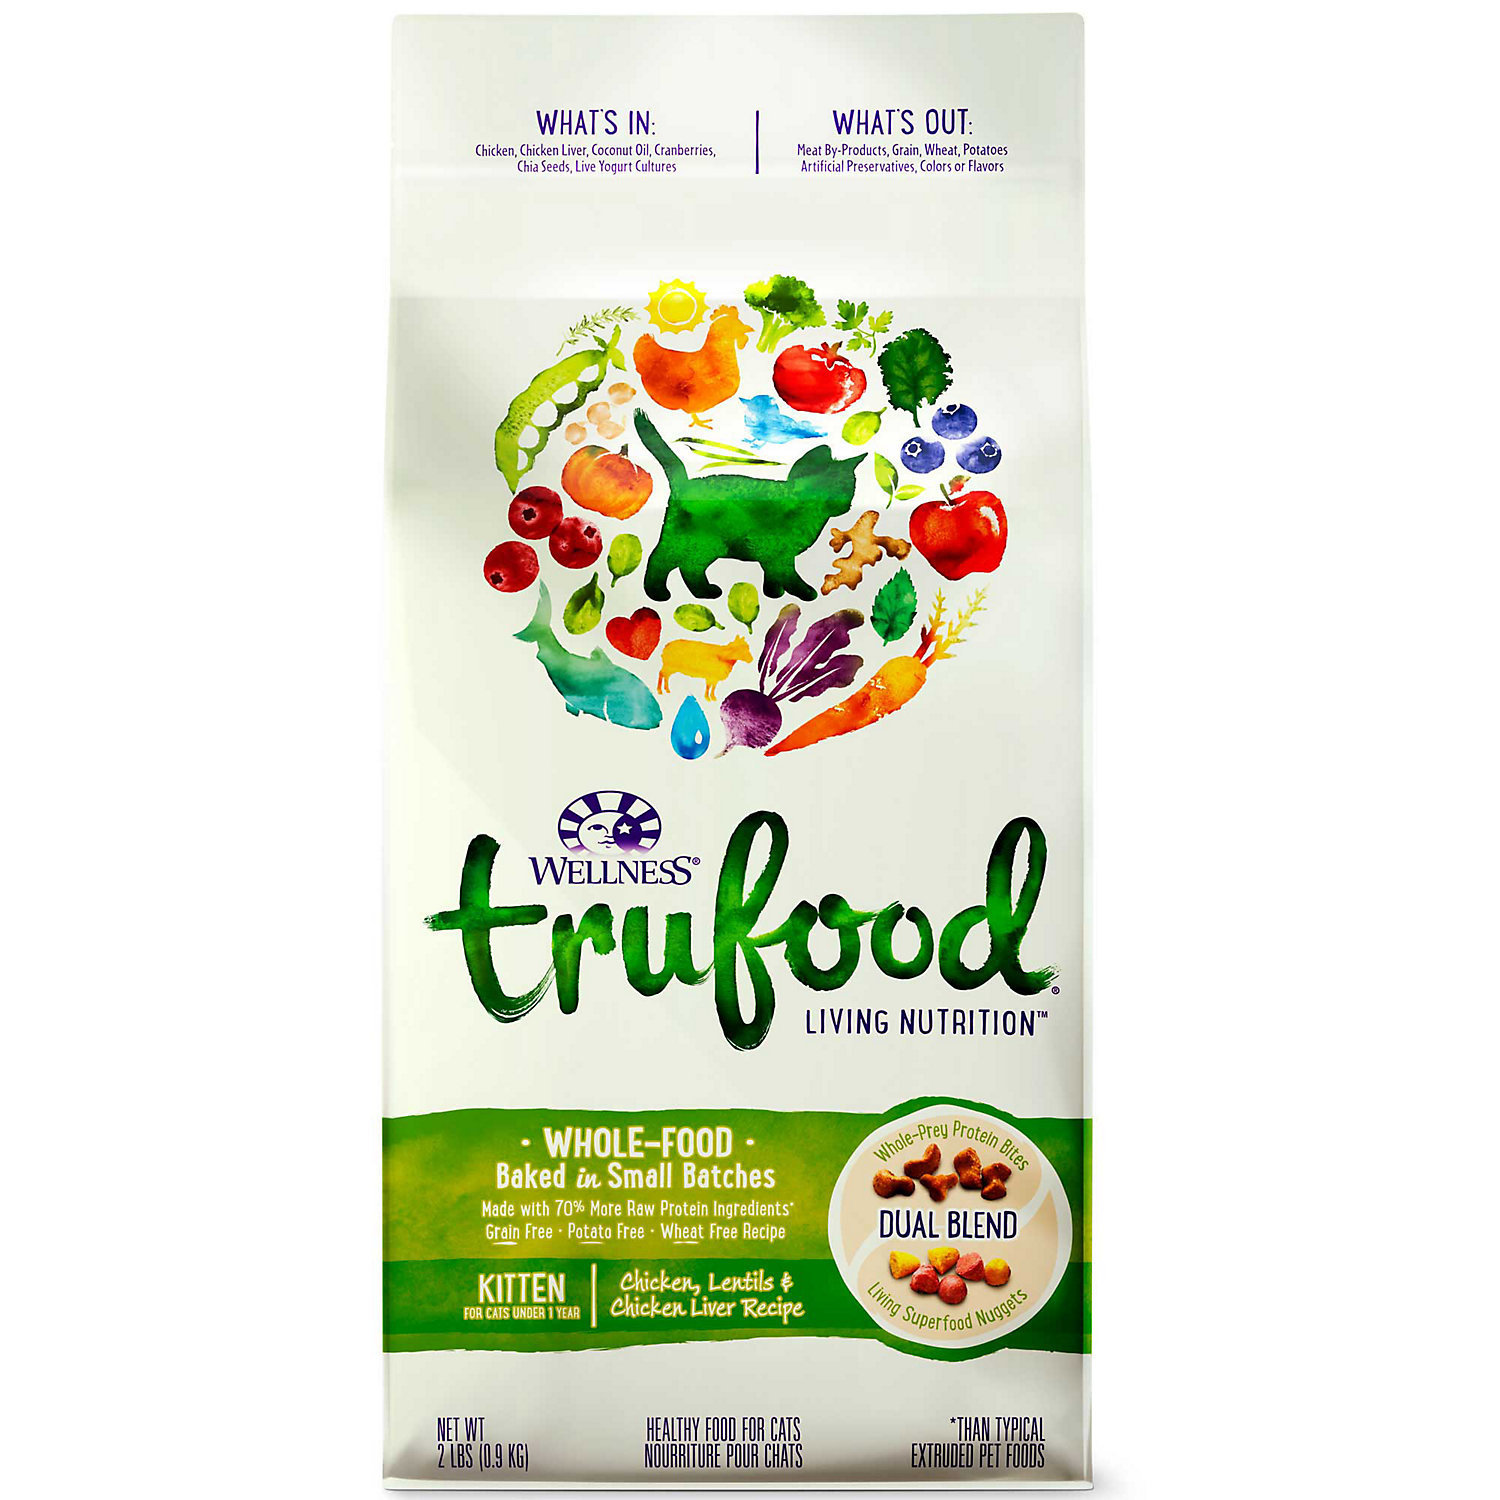 **SALE** Wellness TruFood Chicken, Lentils & Chicken Liver Kitten Food, 2 lbs. (11/17) (A.I1) **SALE**